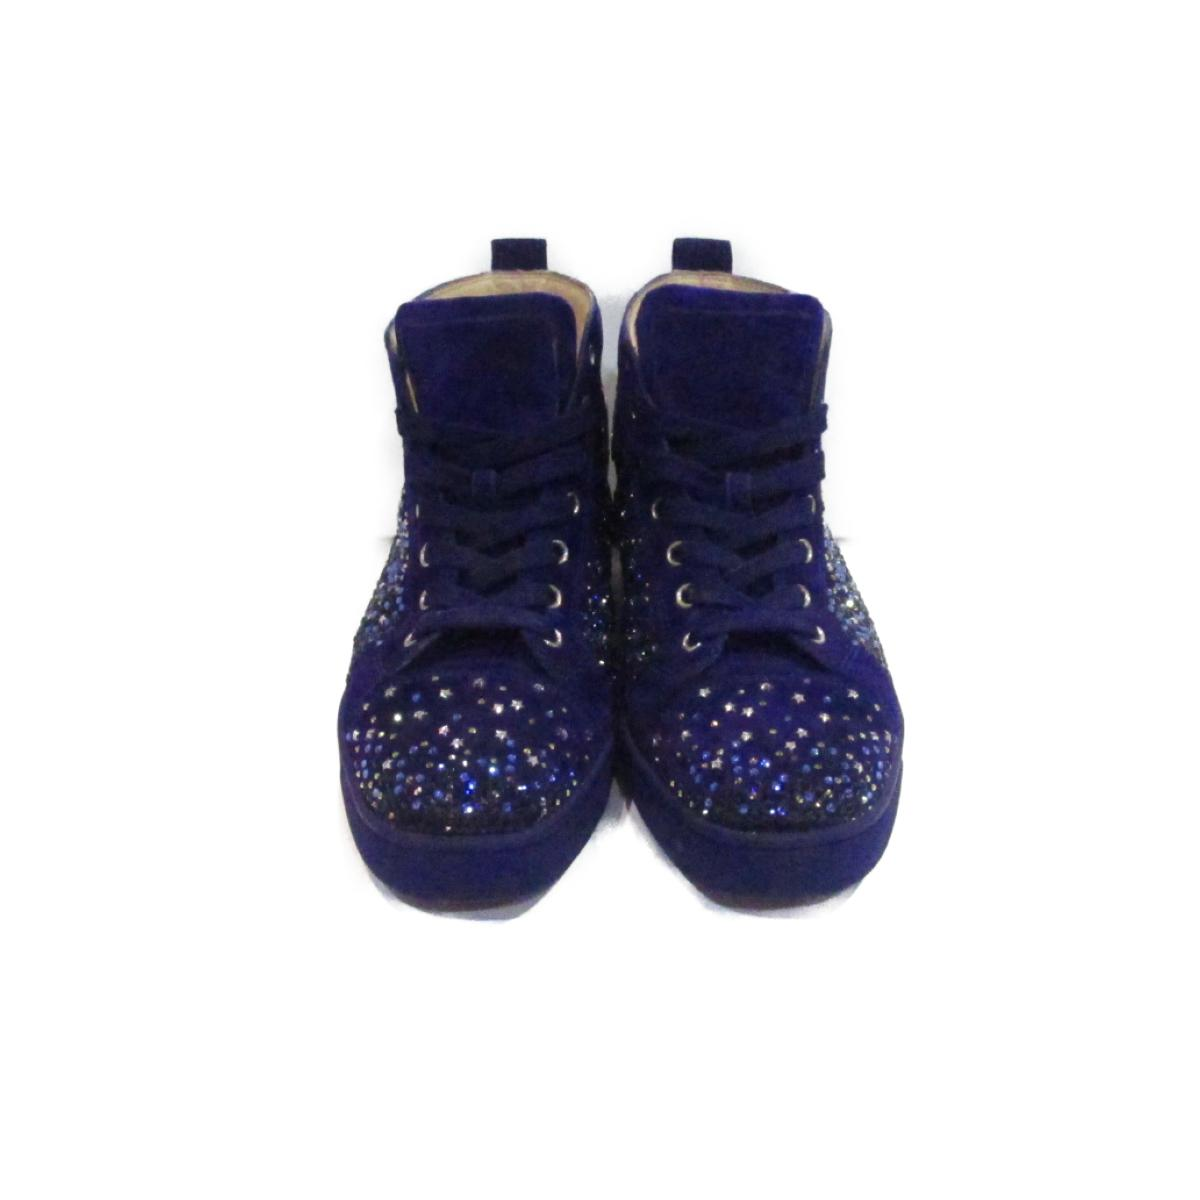 sports shoes 0f184 40fd1 Christian ルブタンハイカット sneakers men gap Dis suede x rubber x rhinestone purple  | Christian louboutin BRANDOFF brand off-brand shoes shoes shoes sneakers